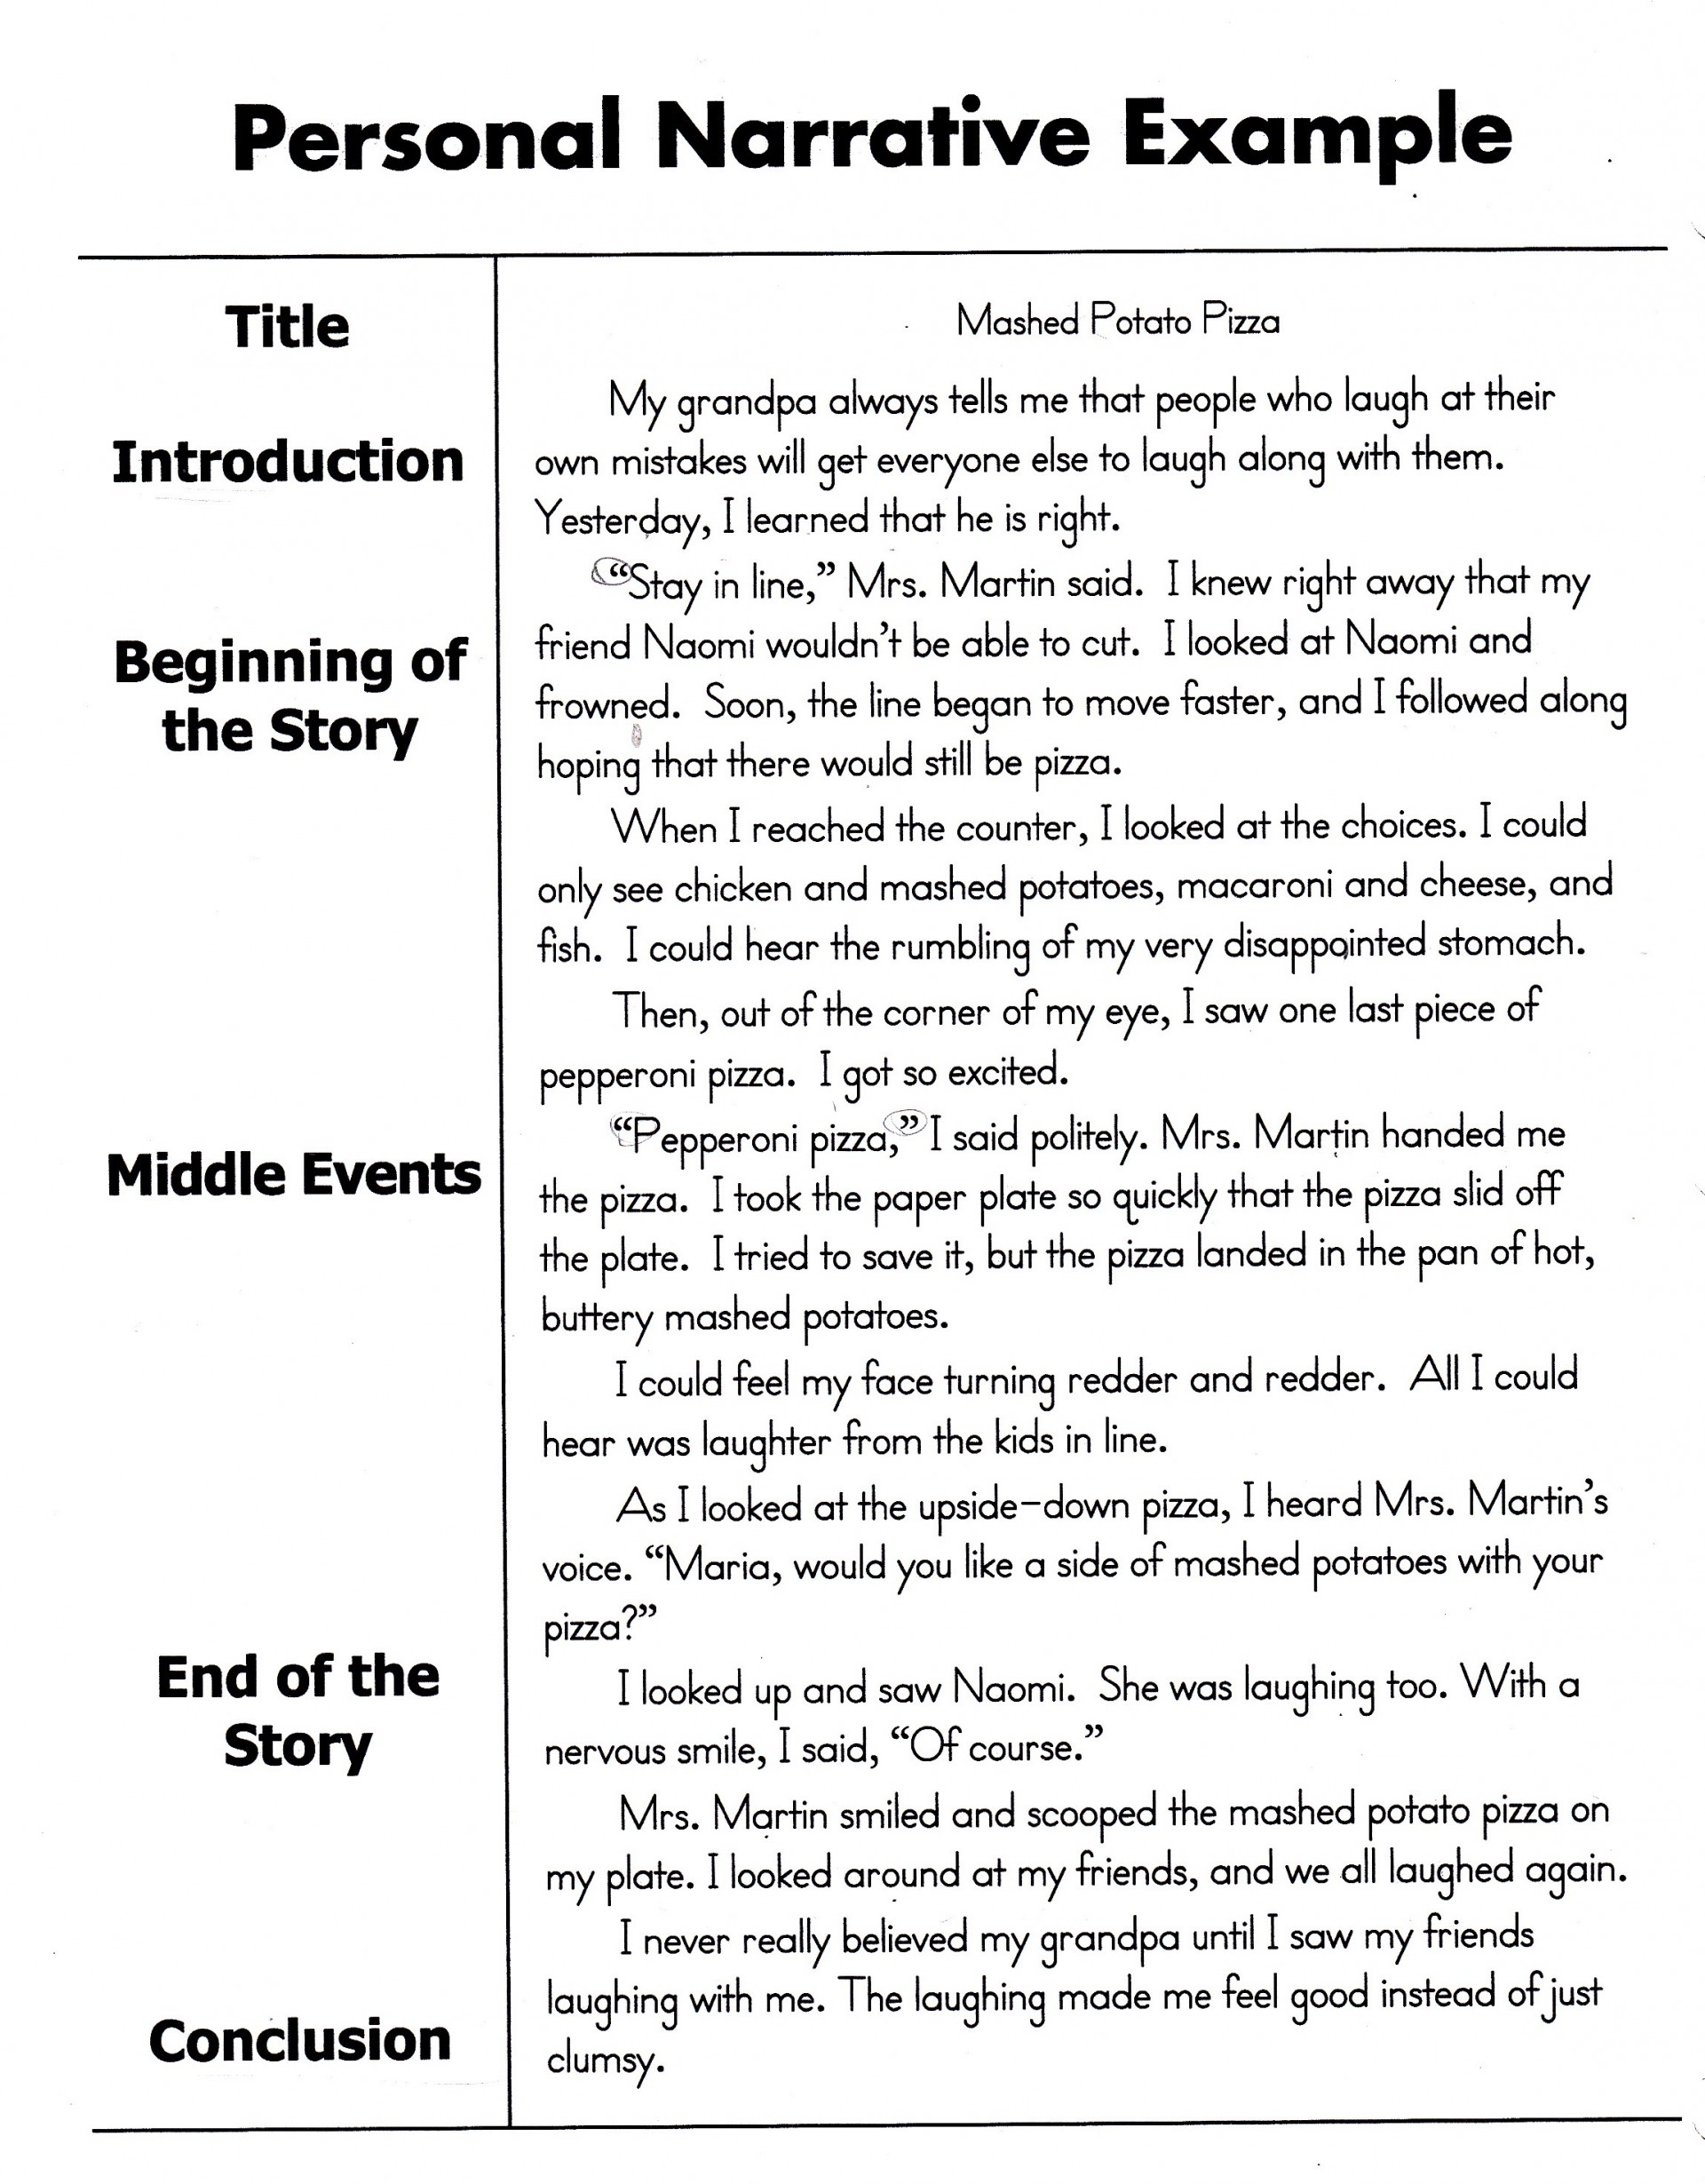 008 Narrative Essay Outline Example Impressive Pdf Personal Structure 1920